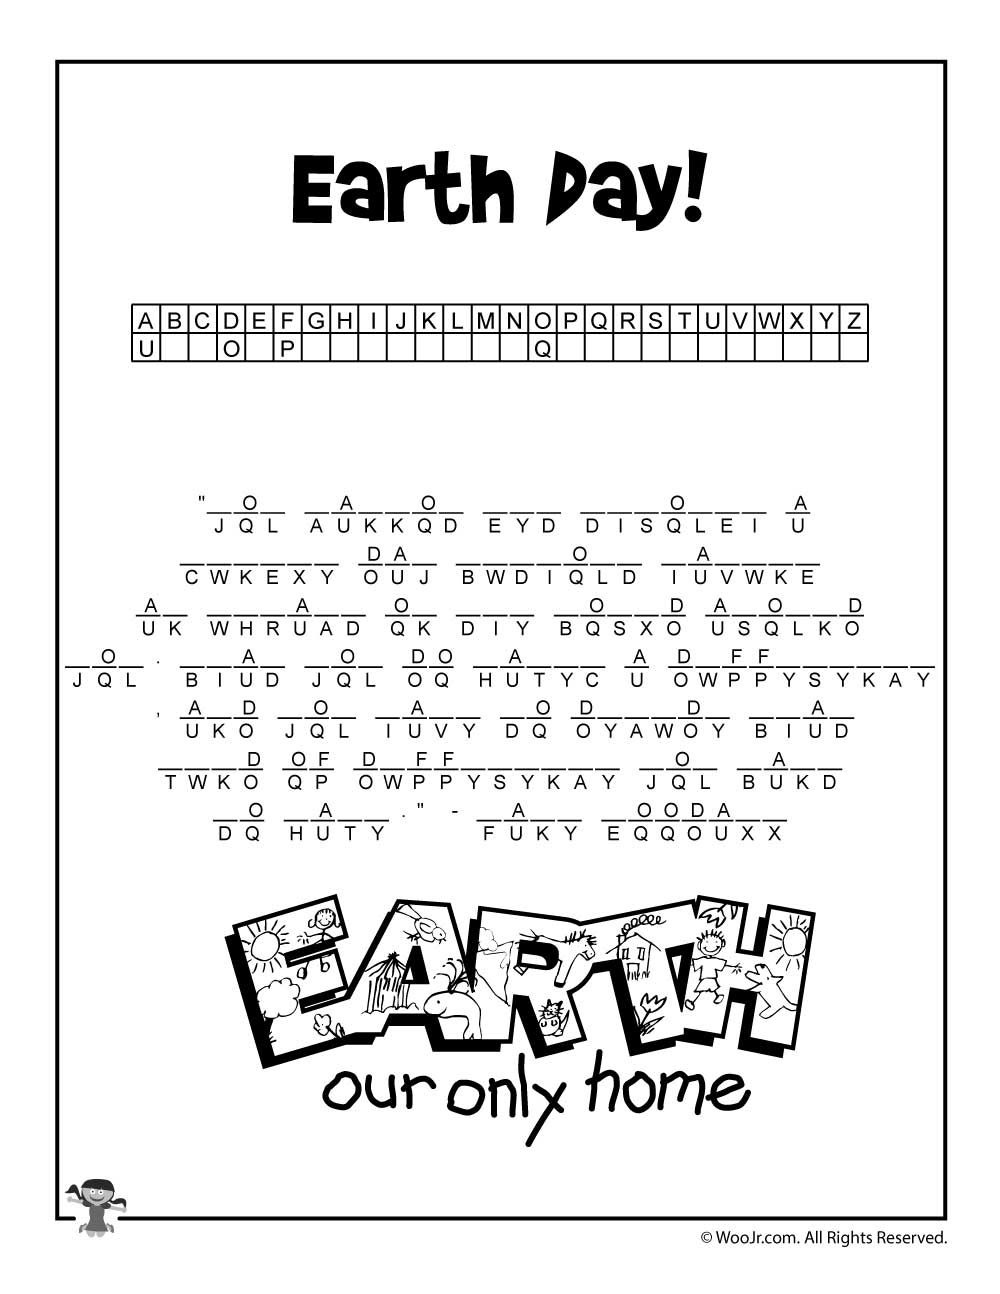 Earth Day Lesson Plan Classroom Activities Worksheets Woo Jr Kids Activities Earth Day Worksheets Letter Worksheets For Preschool Math Worksheets [ 1294 x 1000 Pixel ]